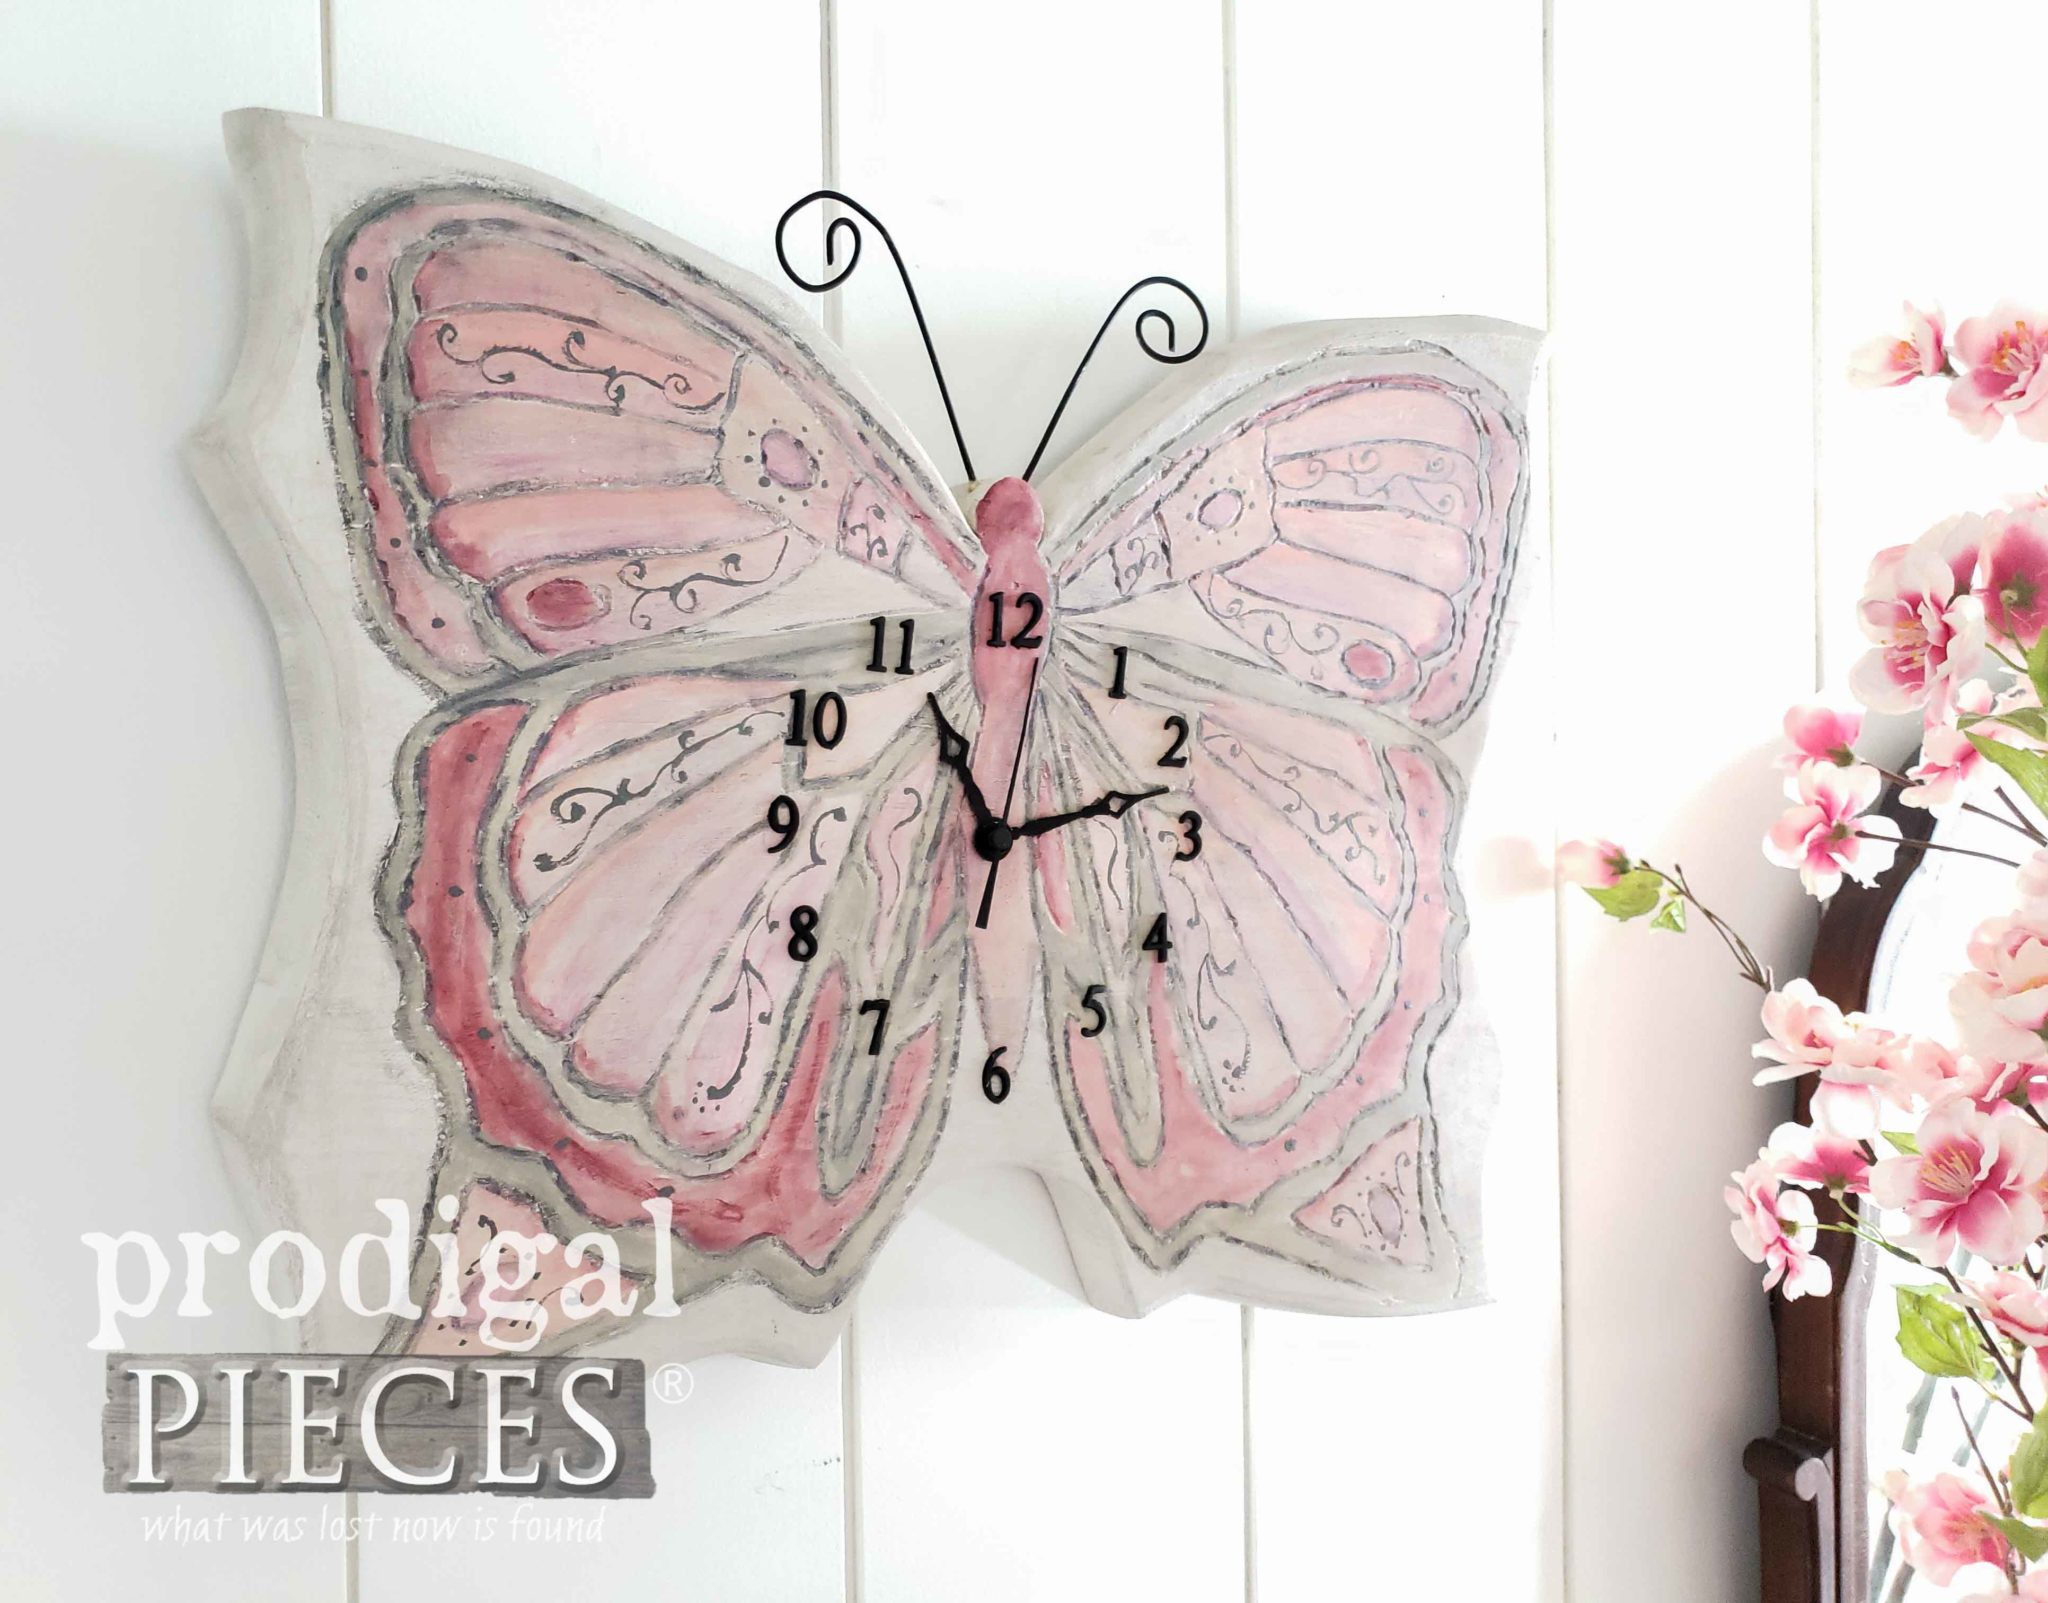 This upcycled butterfly wall clock was created and hand-painted by Larissa of Prodigal Pieces | prodigalpieces.com